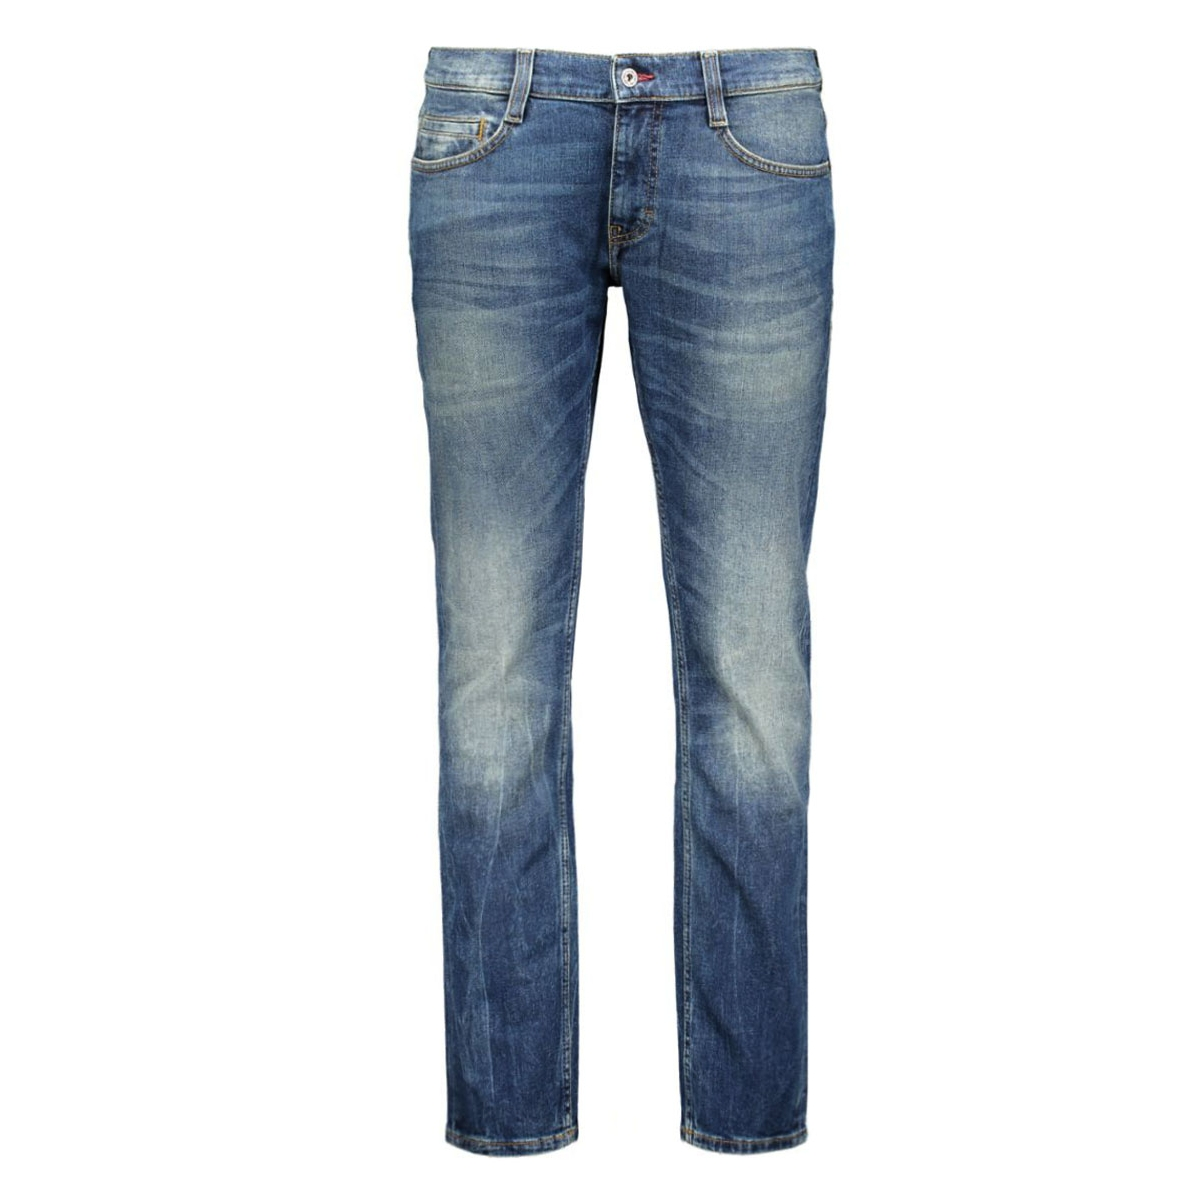 3116 5338 oregon tapered mustang jeans